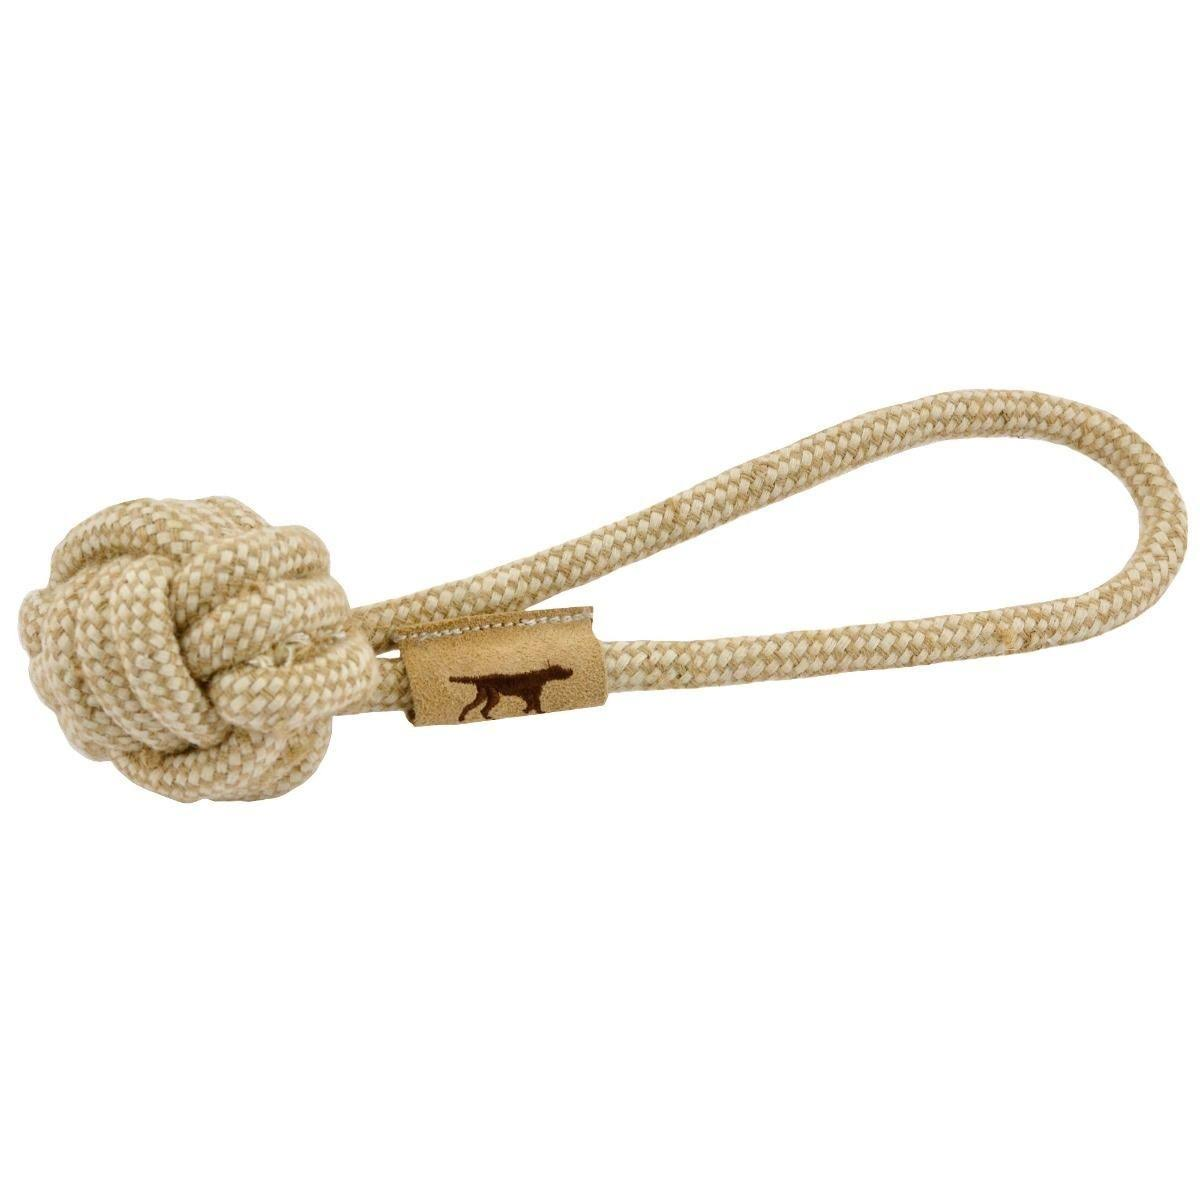 Tall Tails 88215938 Cotton Dog Rope Tug Toy Natural - 10 in.